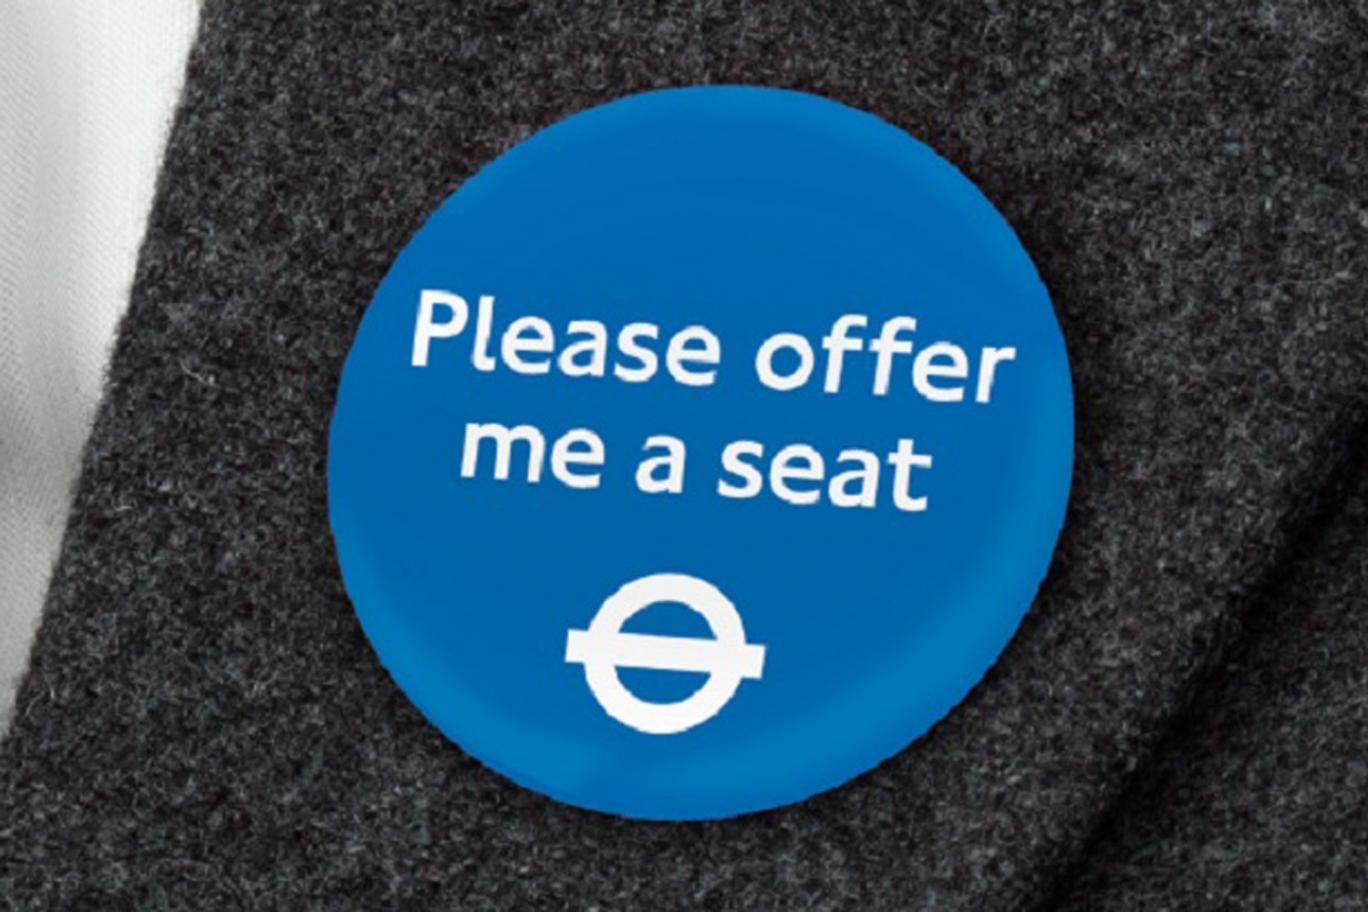 TfL introduces new badges to help disabled passengers find seats